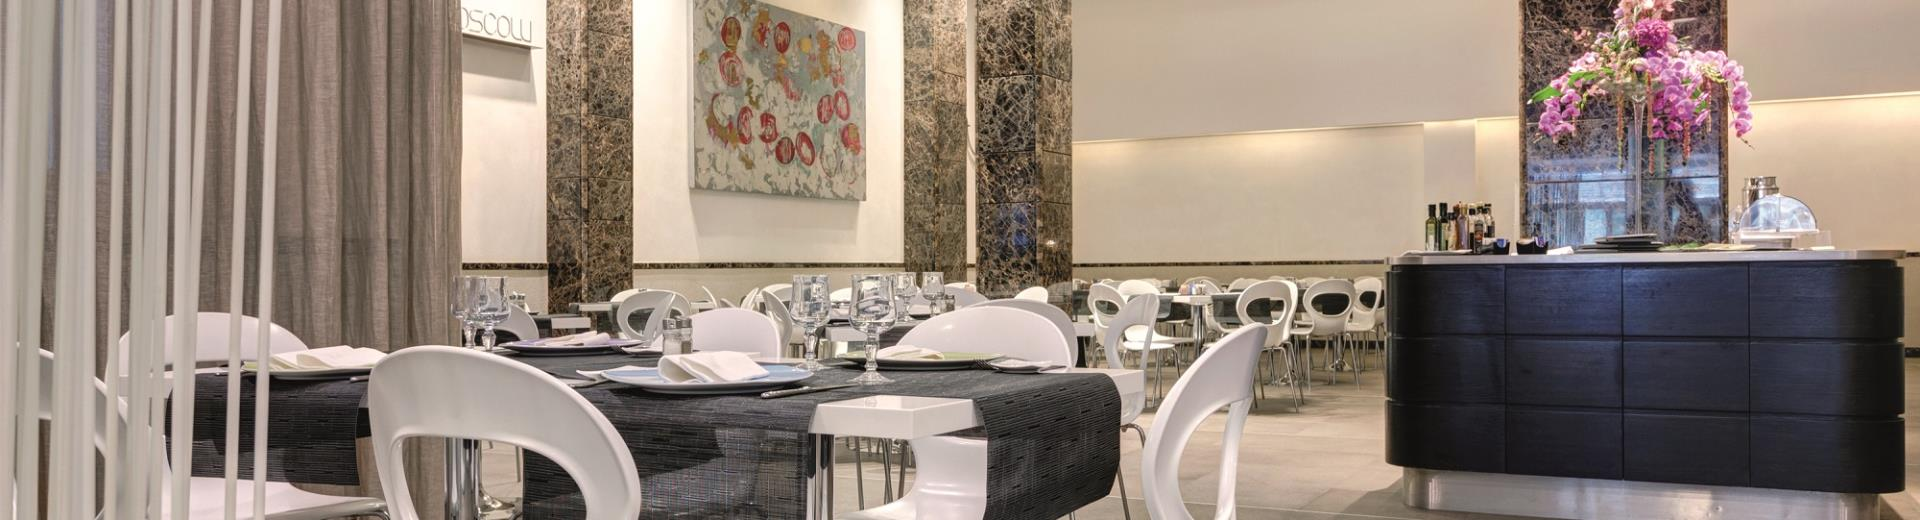 Restaurant hotels 4 star Rome-Hotel Royal Santina